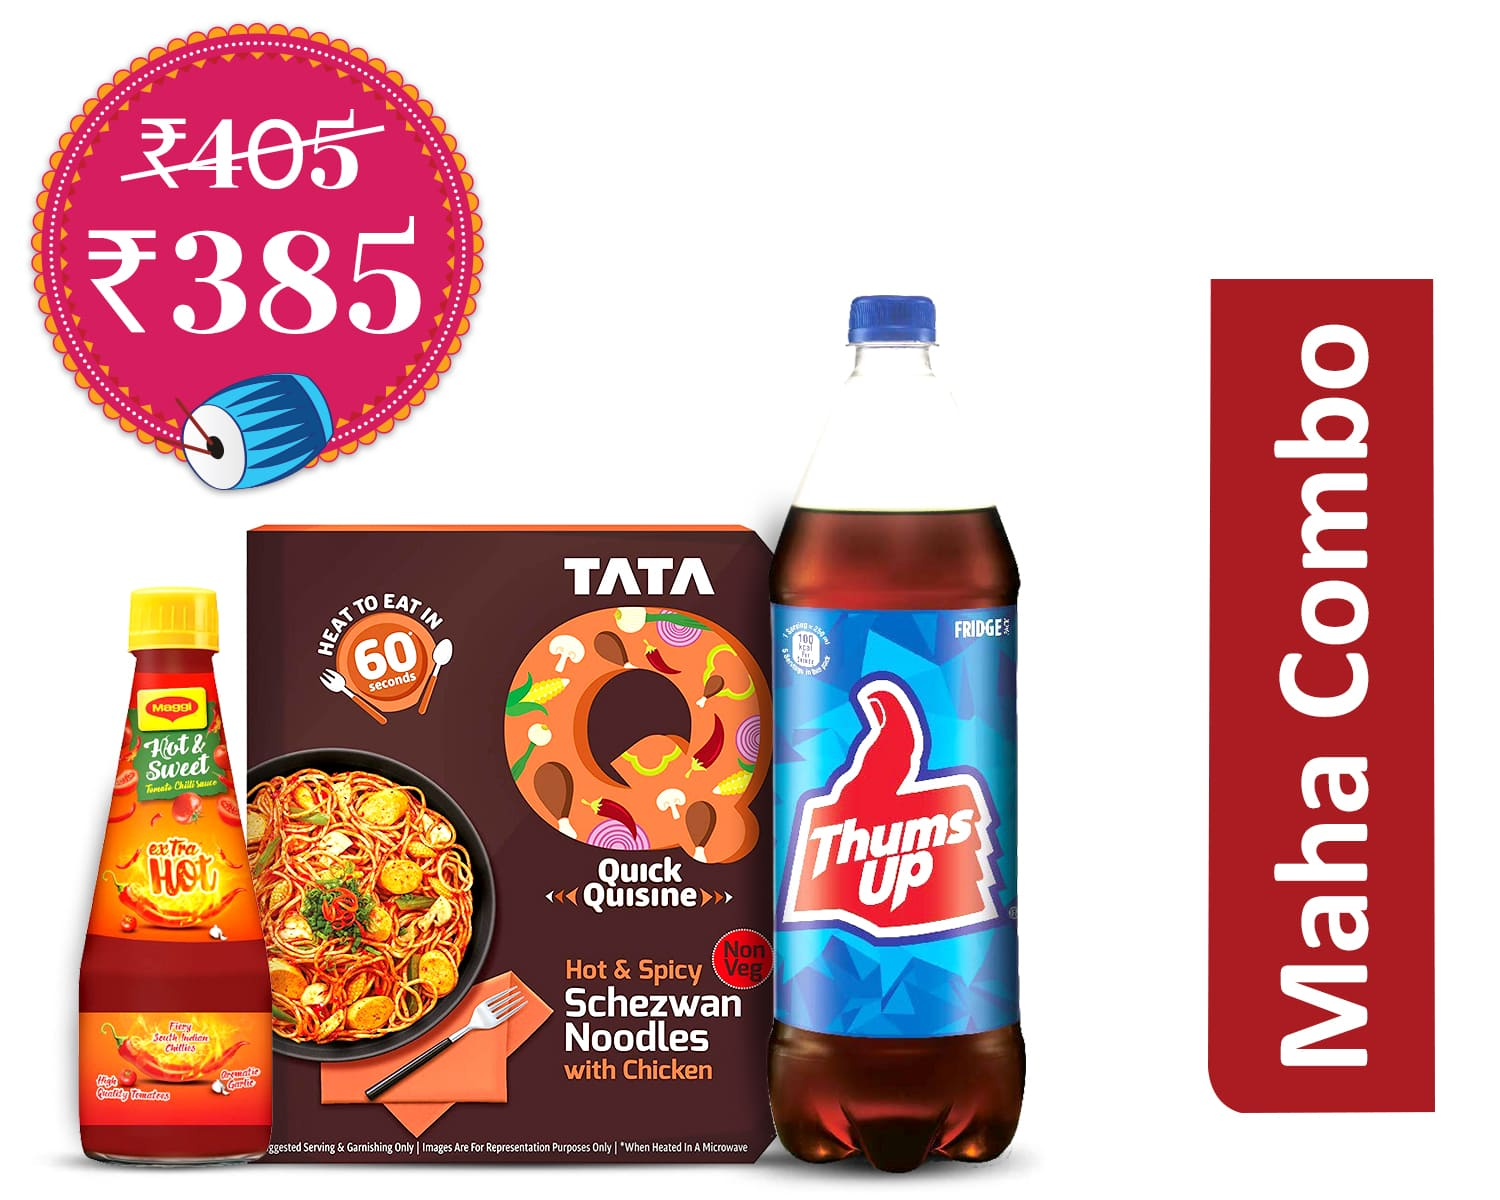 Snack-a-thon Packs - Non-veg (1Unit): Tata`Q Hot & Spicy Schezwan Noodles With Chicken * 2 + Maggi Extra Hot H&S + Thums Up 1.25ltr